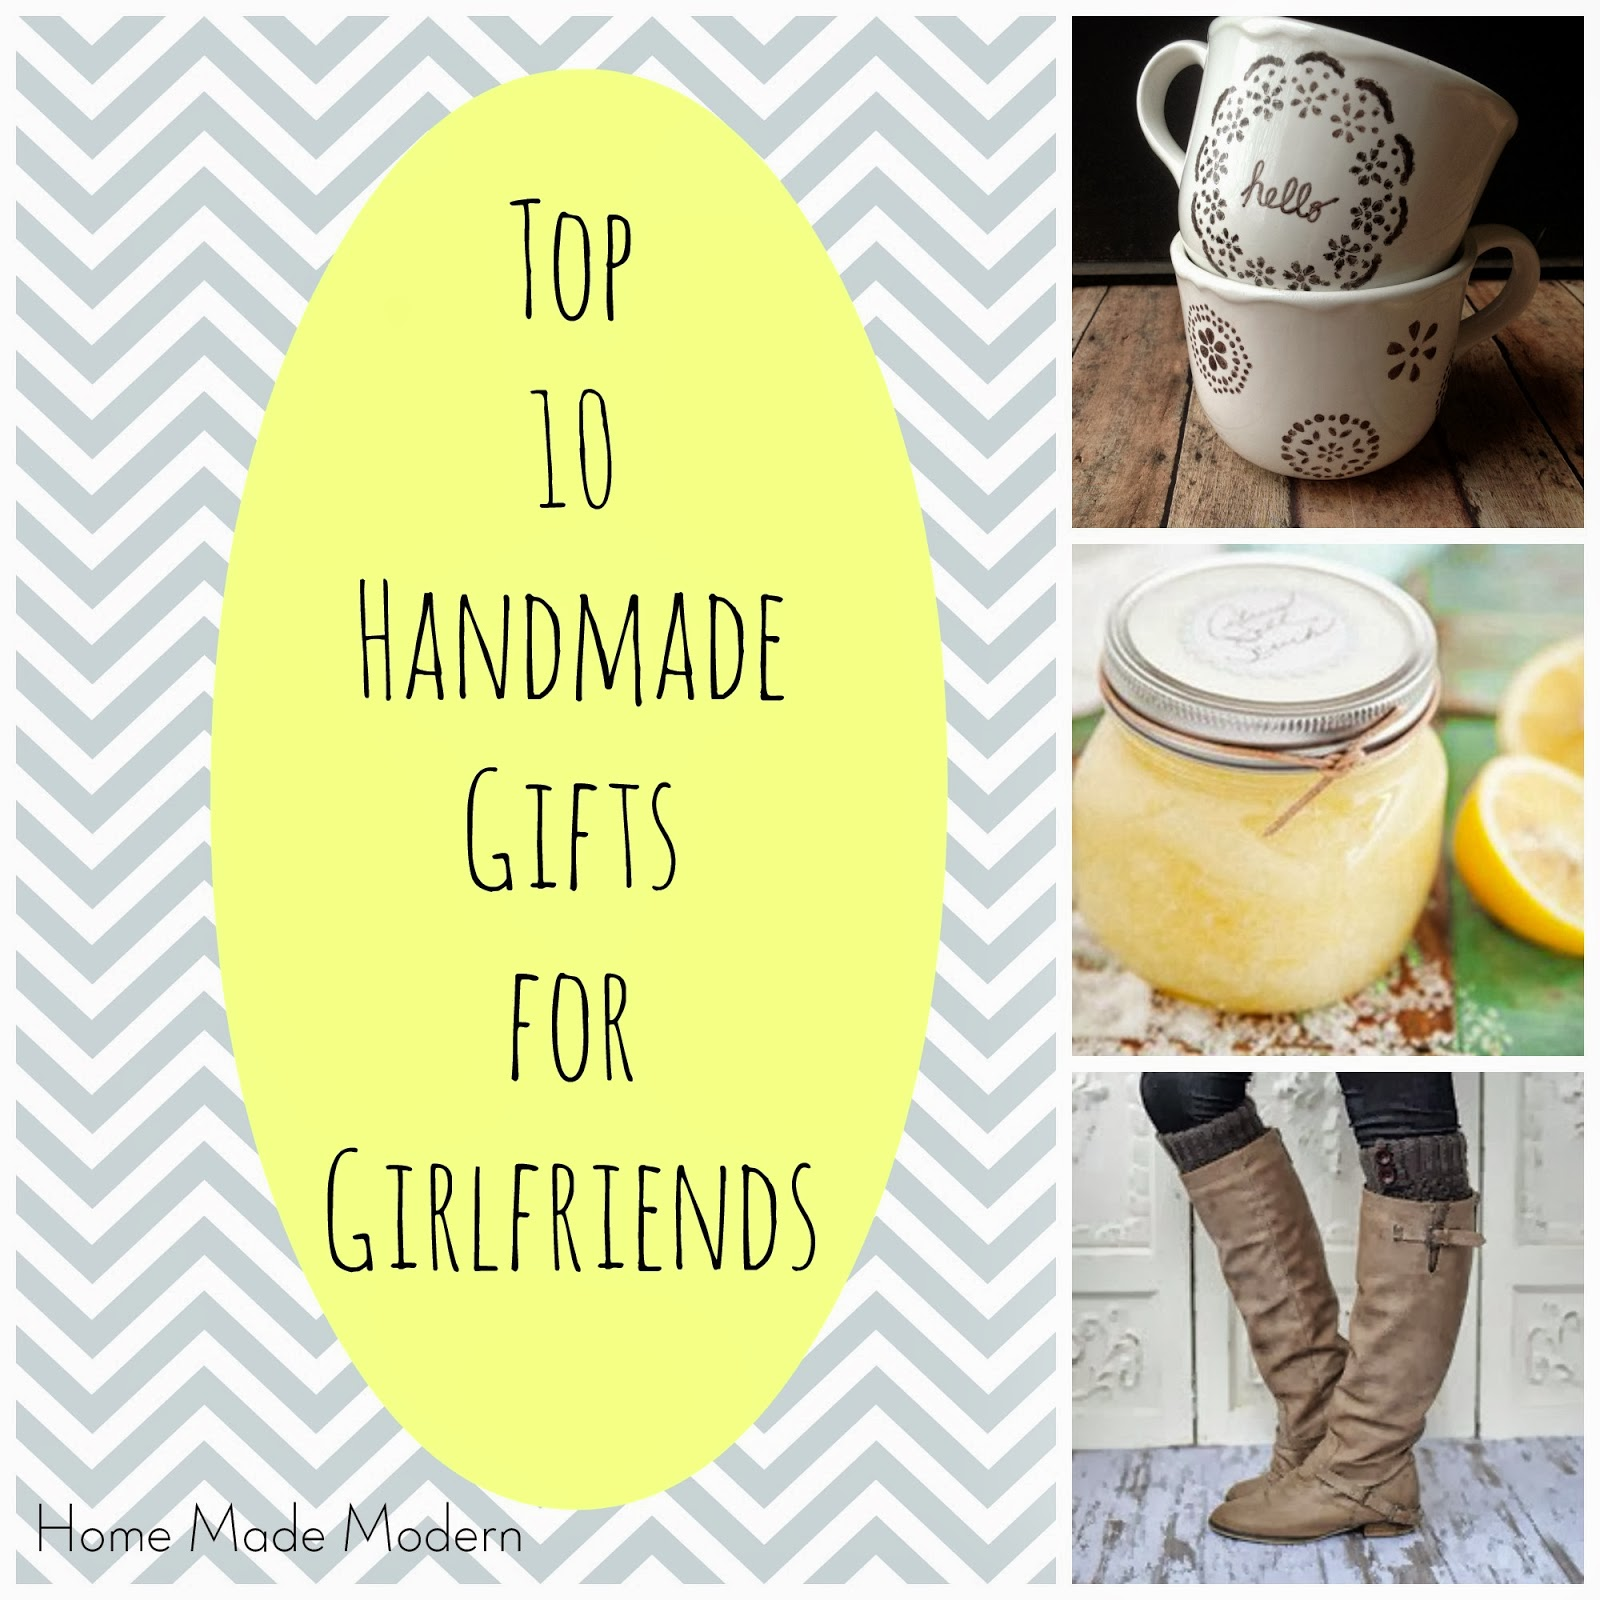 Christmas Gift Ideas For Girlfriend: Home Made Modern: Craft Of The Week: Top 10 Handmade Gifts